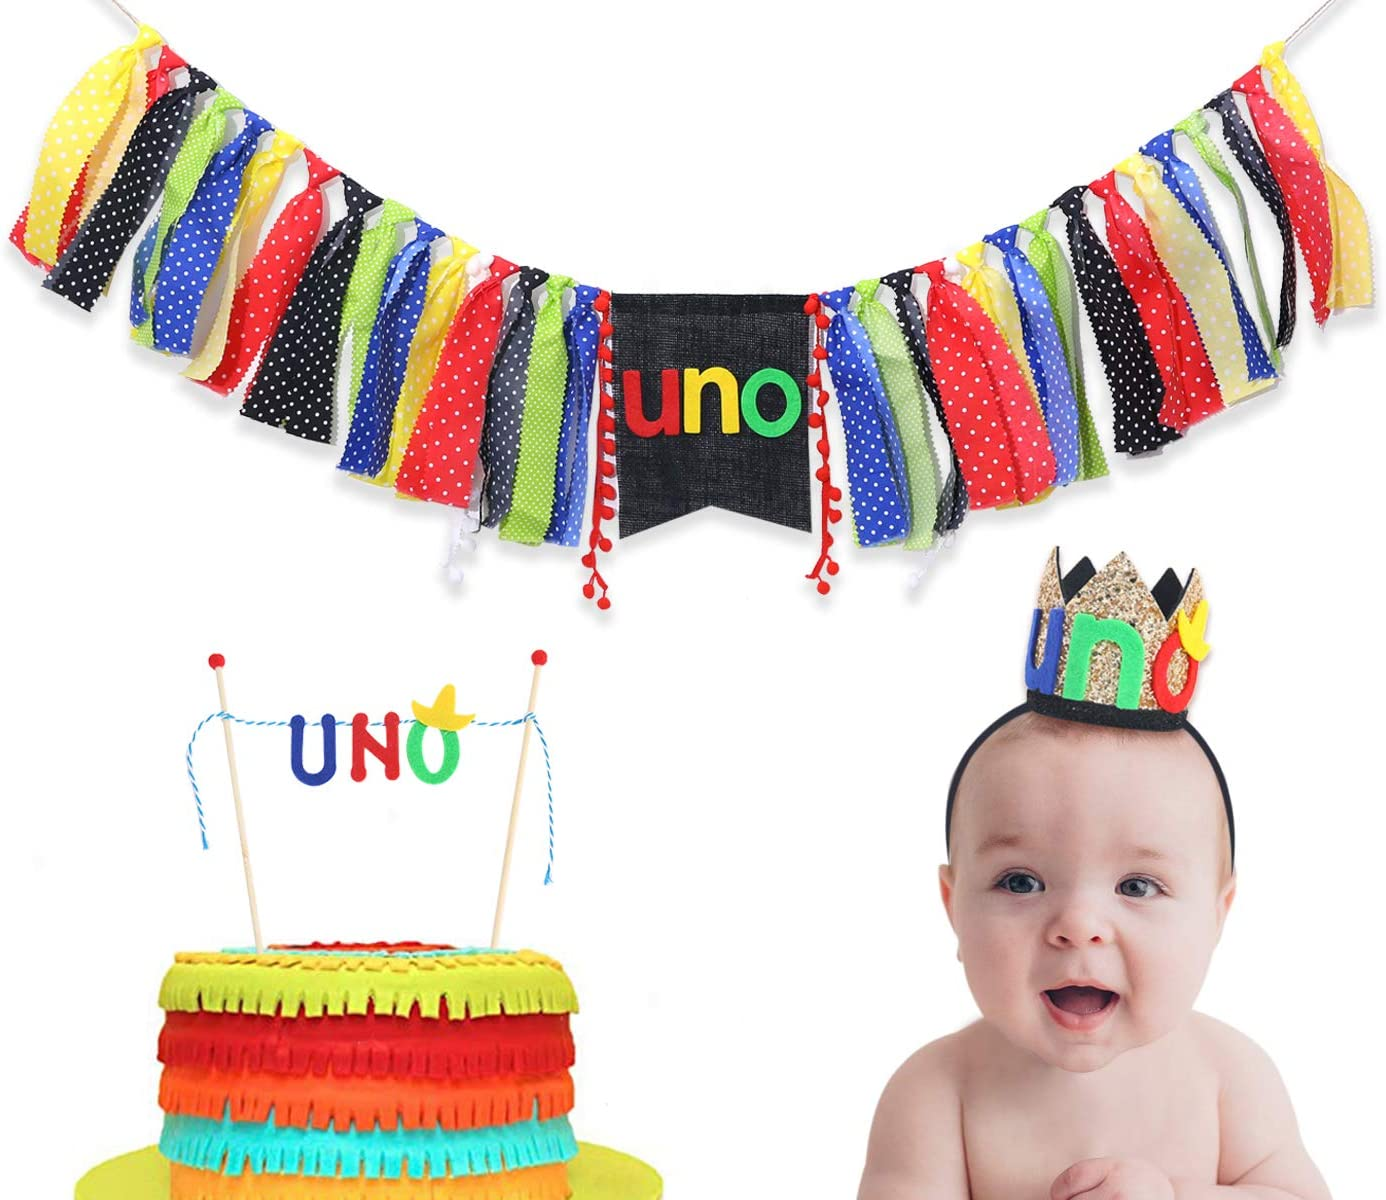 Uno Party Decorations For 1st Birthday - The Party Pack Include Uno Hat,Uno Banner,Uno Cake Topper - Uno Birthday Decorations For Photo Booth Props - Best Uno Party Supplies For Baby